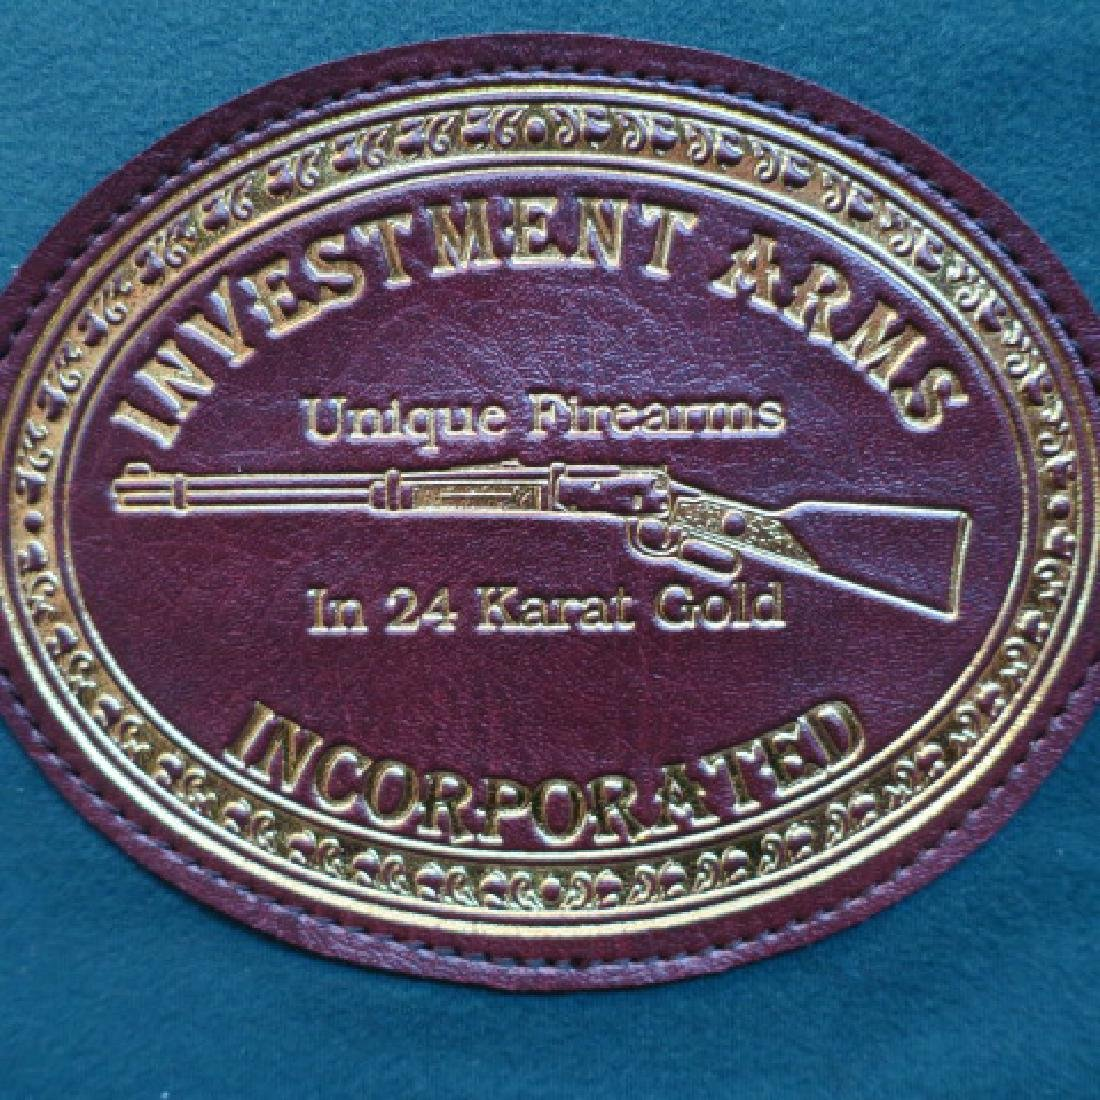 INVESTMENT ARMS, TAZEWELL COUNTY VA, WINCHESTER 94AE: - 5